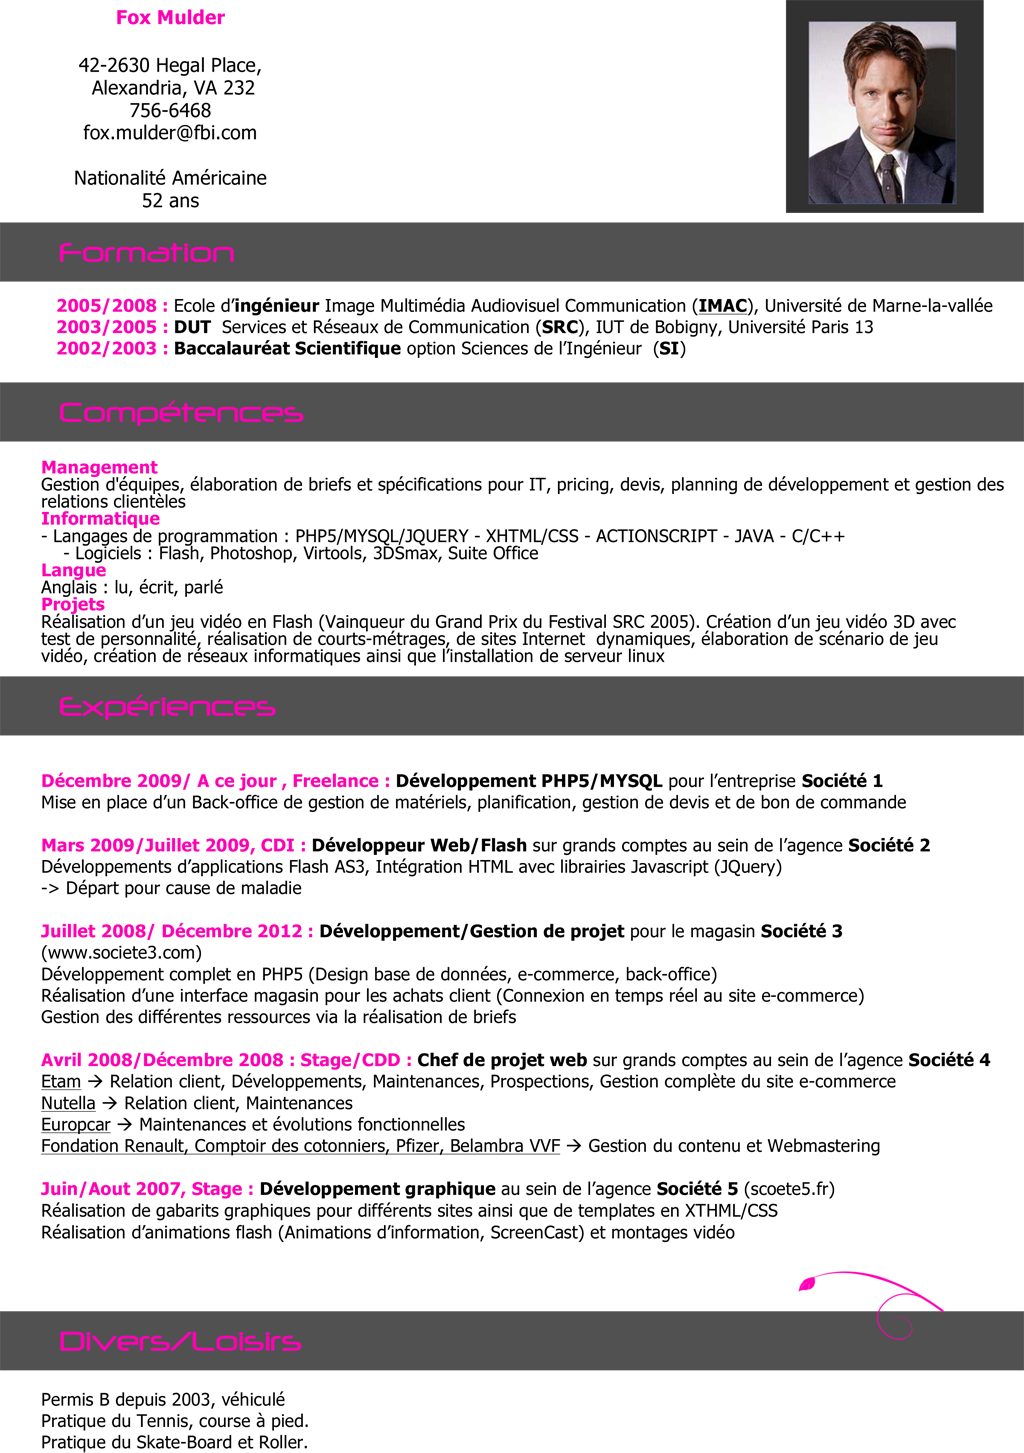 cv p ingenieur informatique